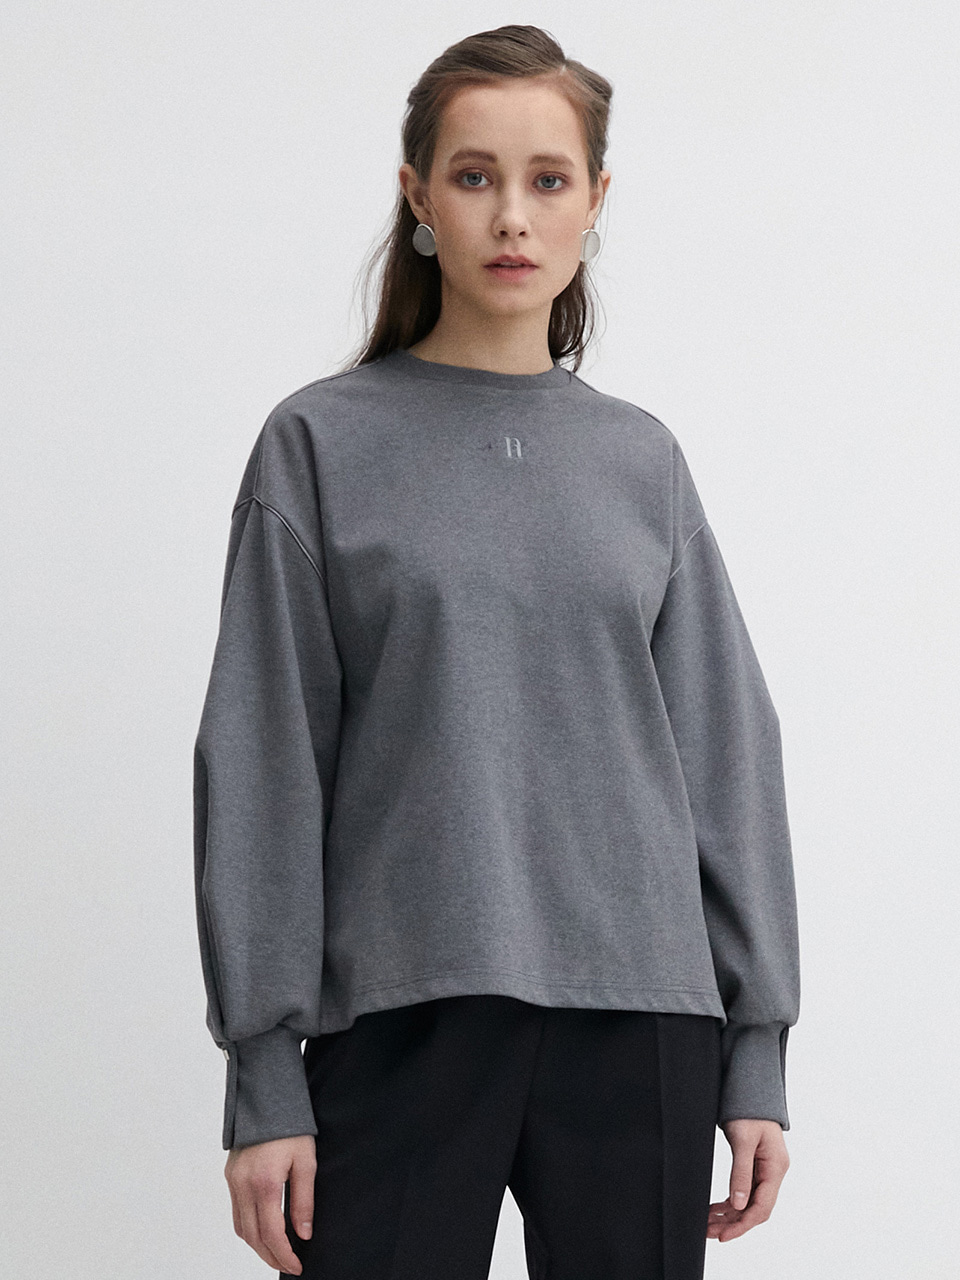 003 Puff Pin Tuck Sweatshirt - Grey